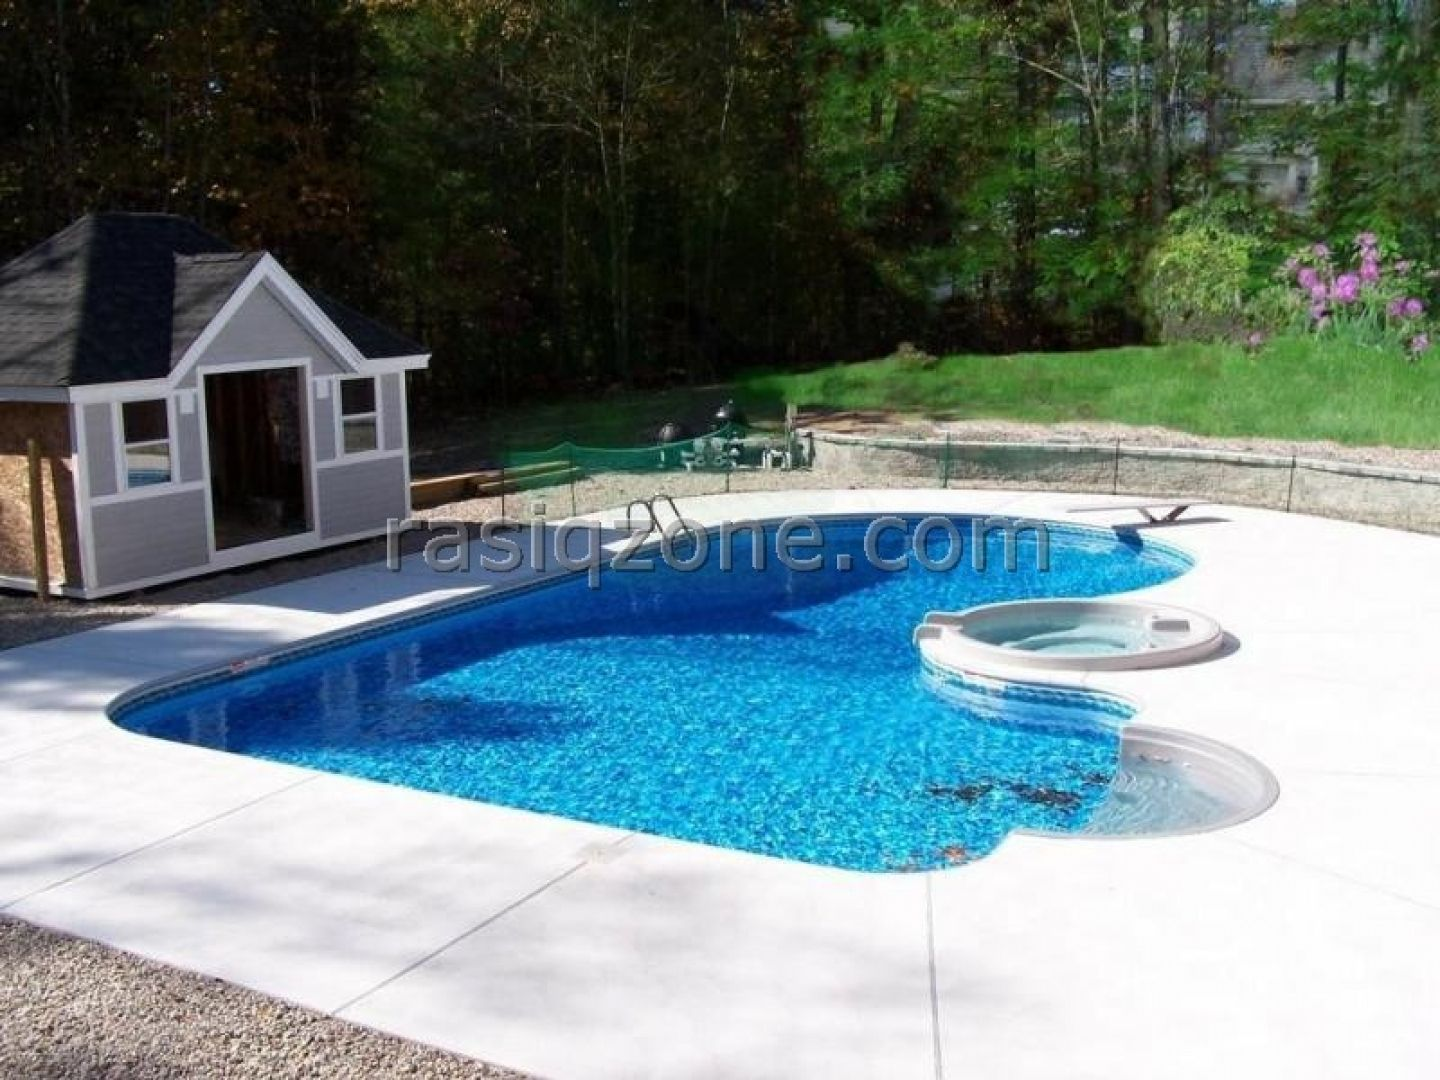 Inground Pools Kids Will Love Pool Designs Backyard